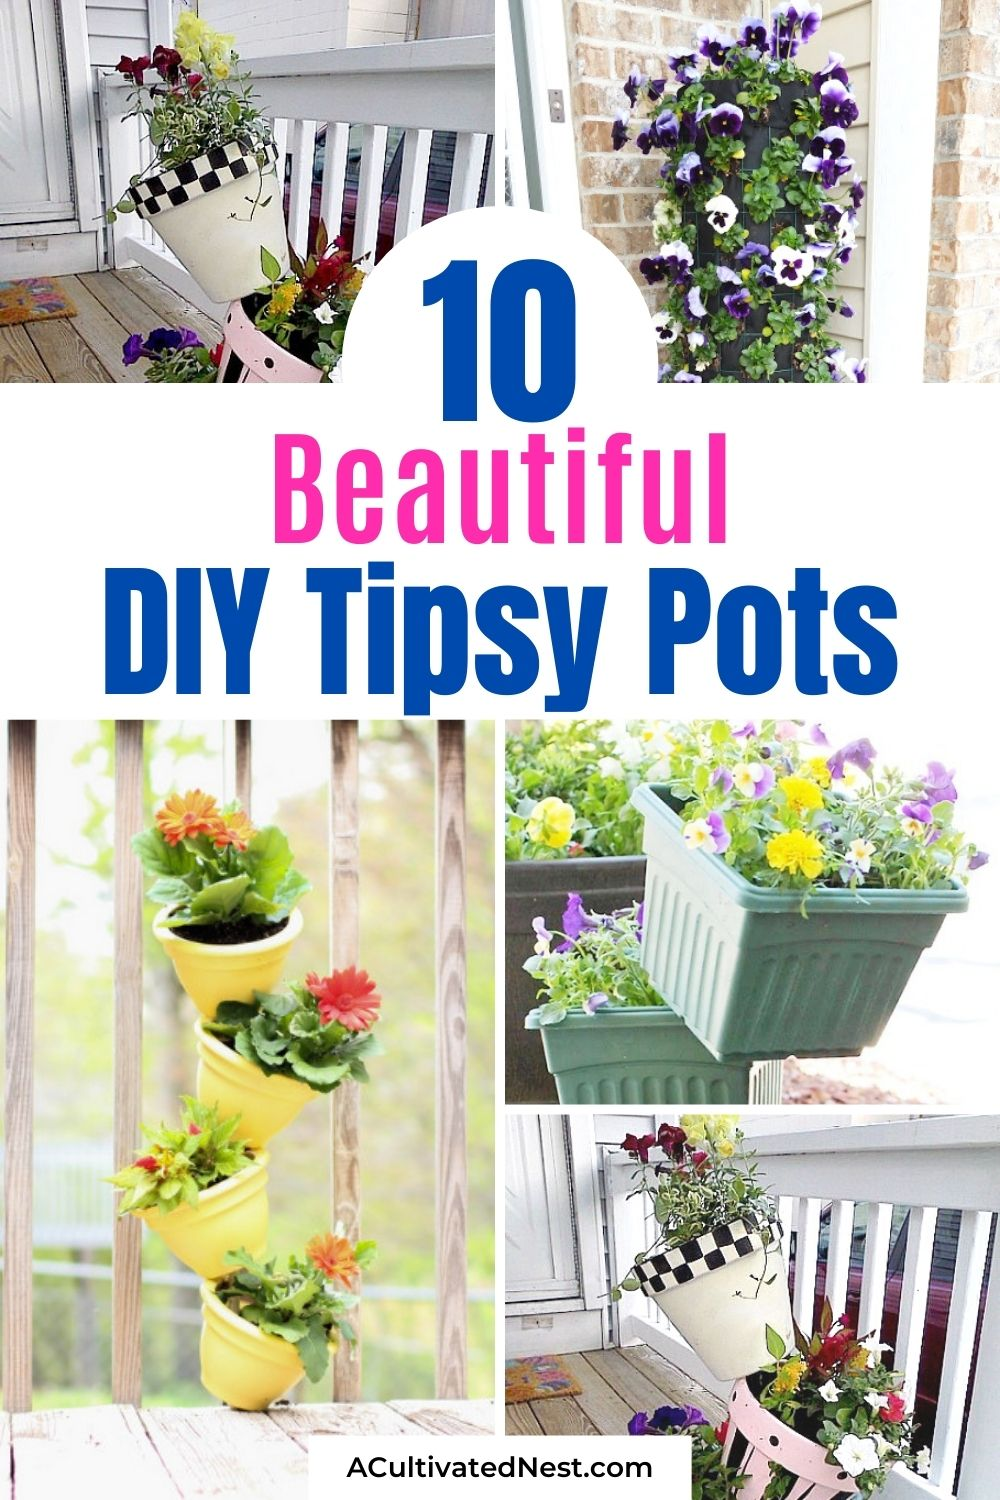 10 Amazing Flower Towers or Tipsy Pot Planters Ideas